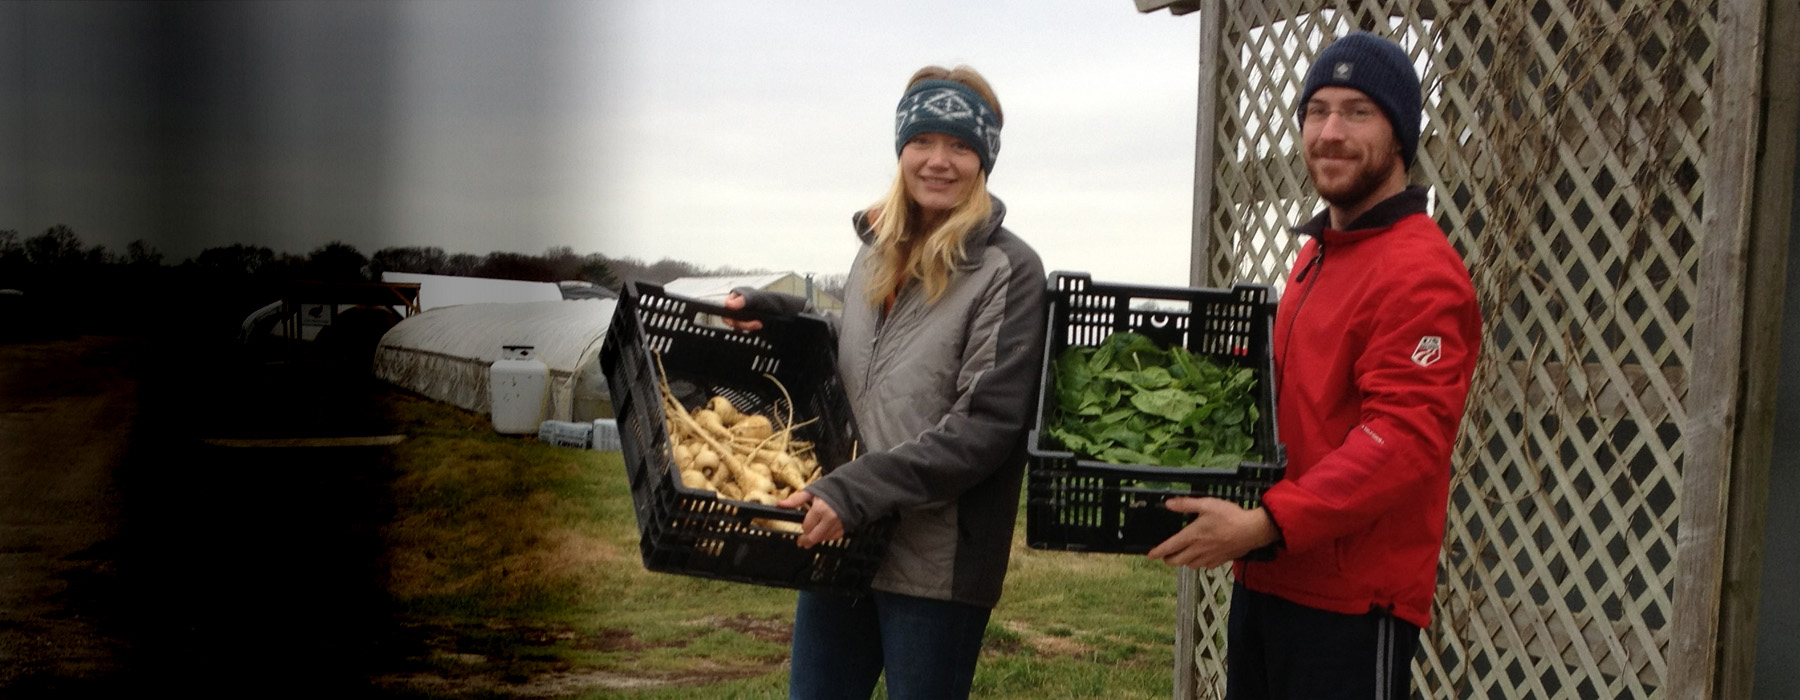 Food pantry Farm: Darcy and jack helping load fresh produce into